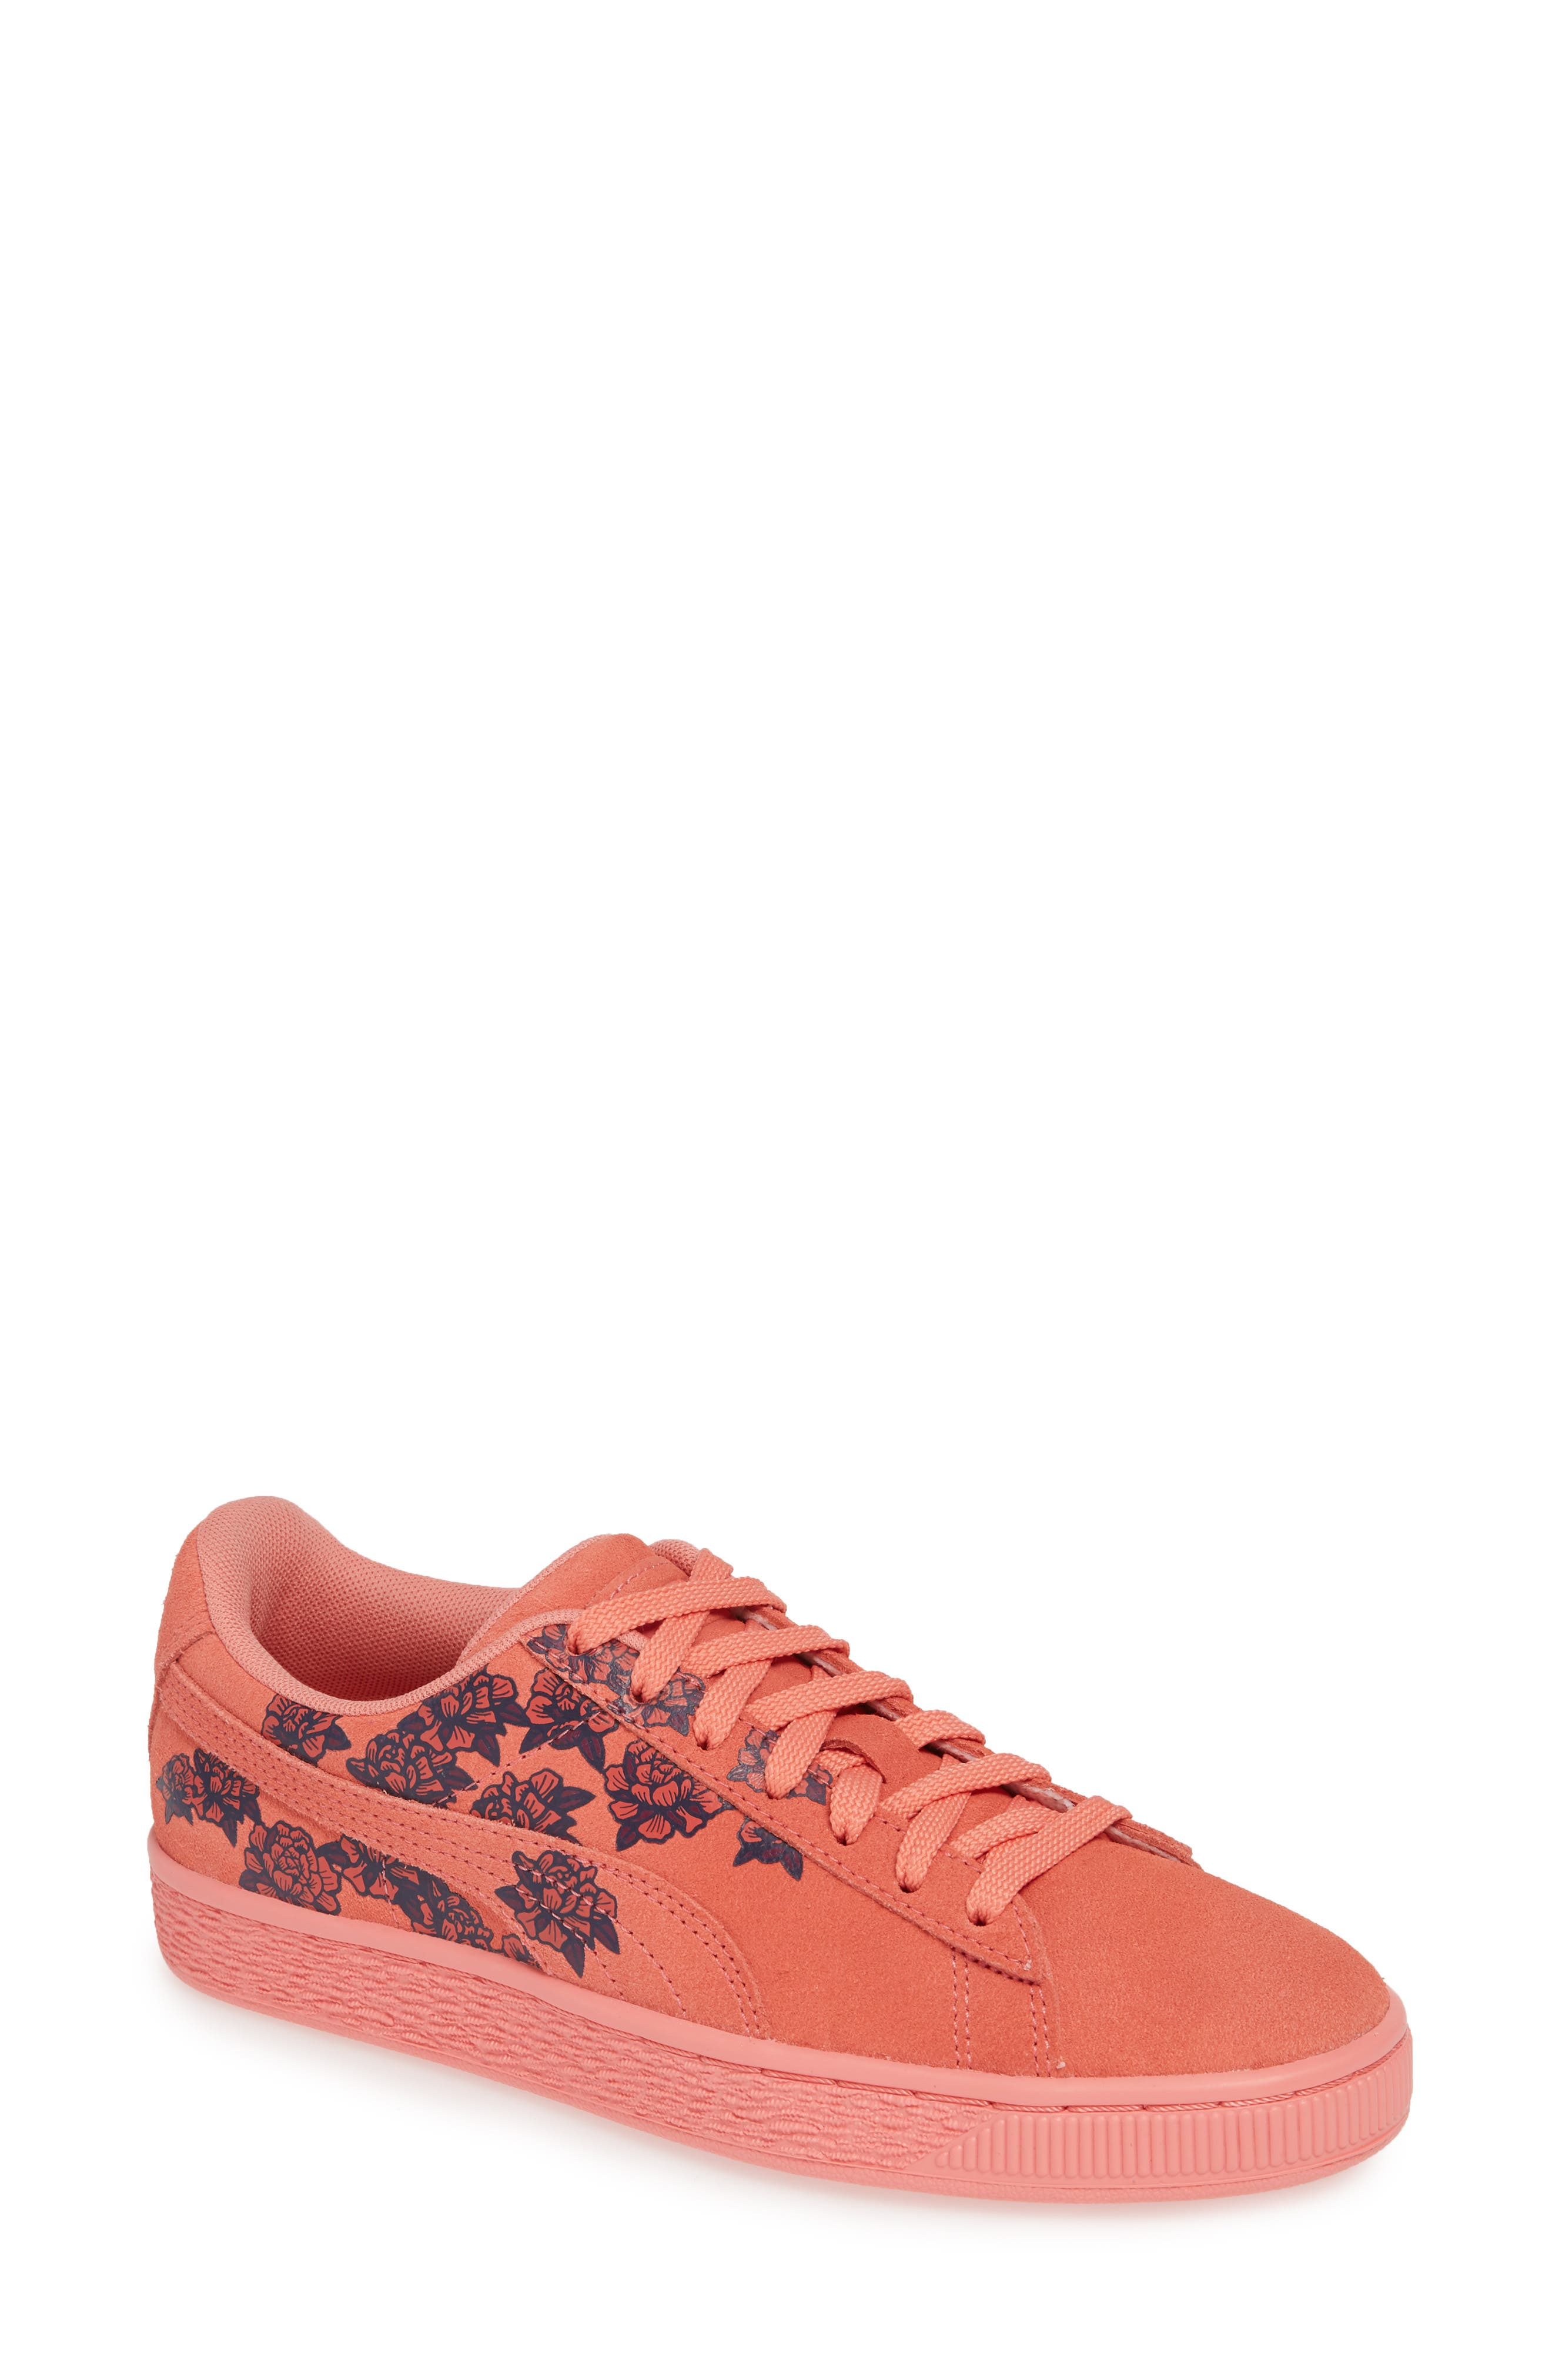 PUMA, Suede TOL Graphic Sneaker, Main thumbnail 1, color, SHELL PINK